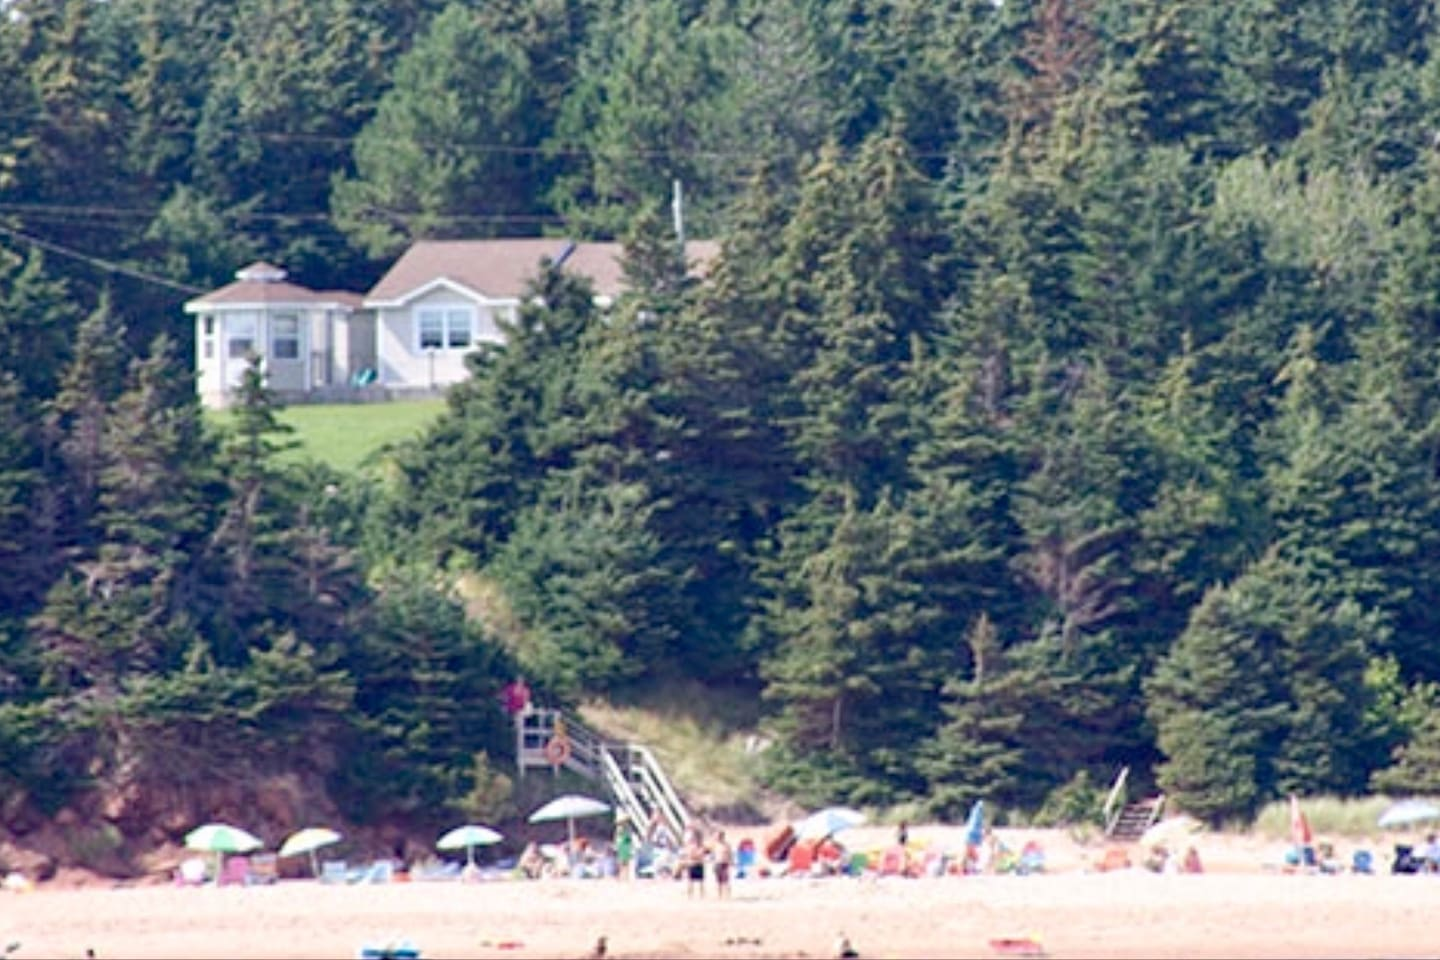 View from the Beach to the Cottage